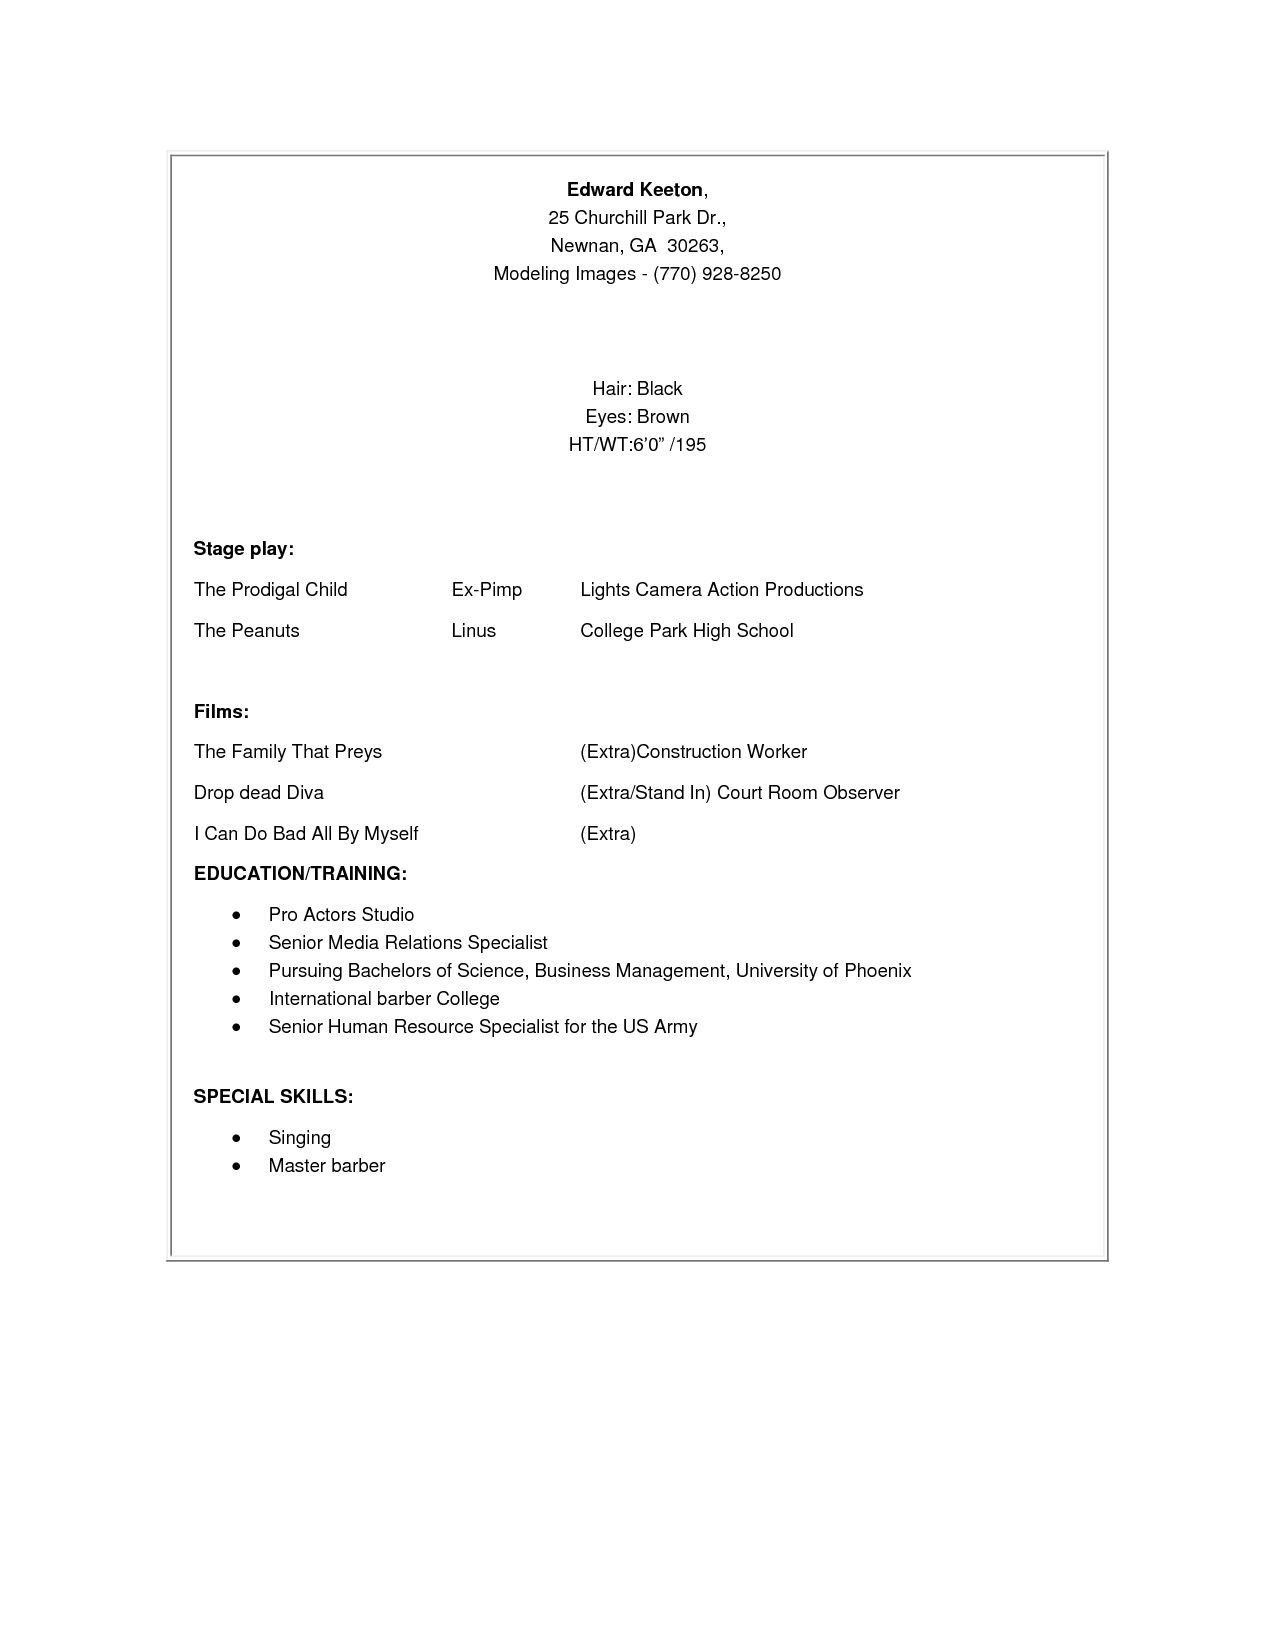 Resume Sample Child Acting Template How Pertaining Model Format Cipanewsletter Regarding Template Resume Template Professional Resume Templates Resume Template